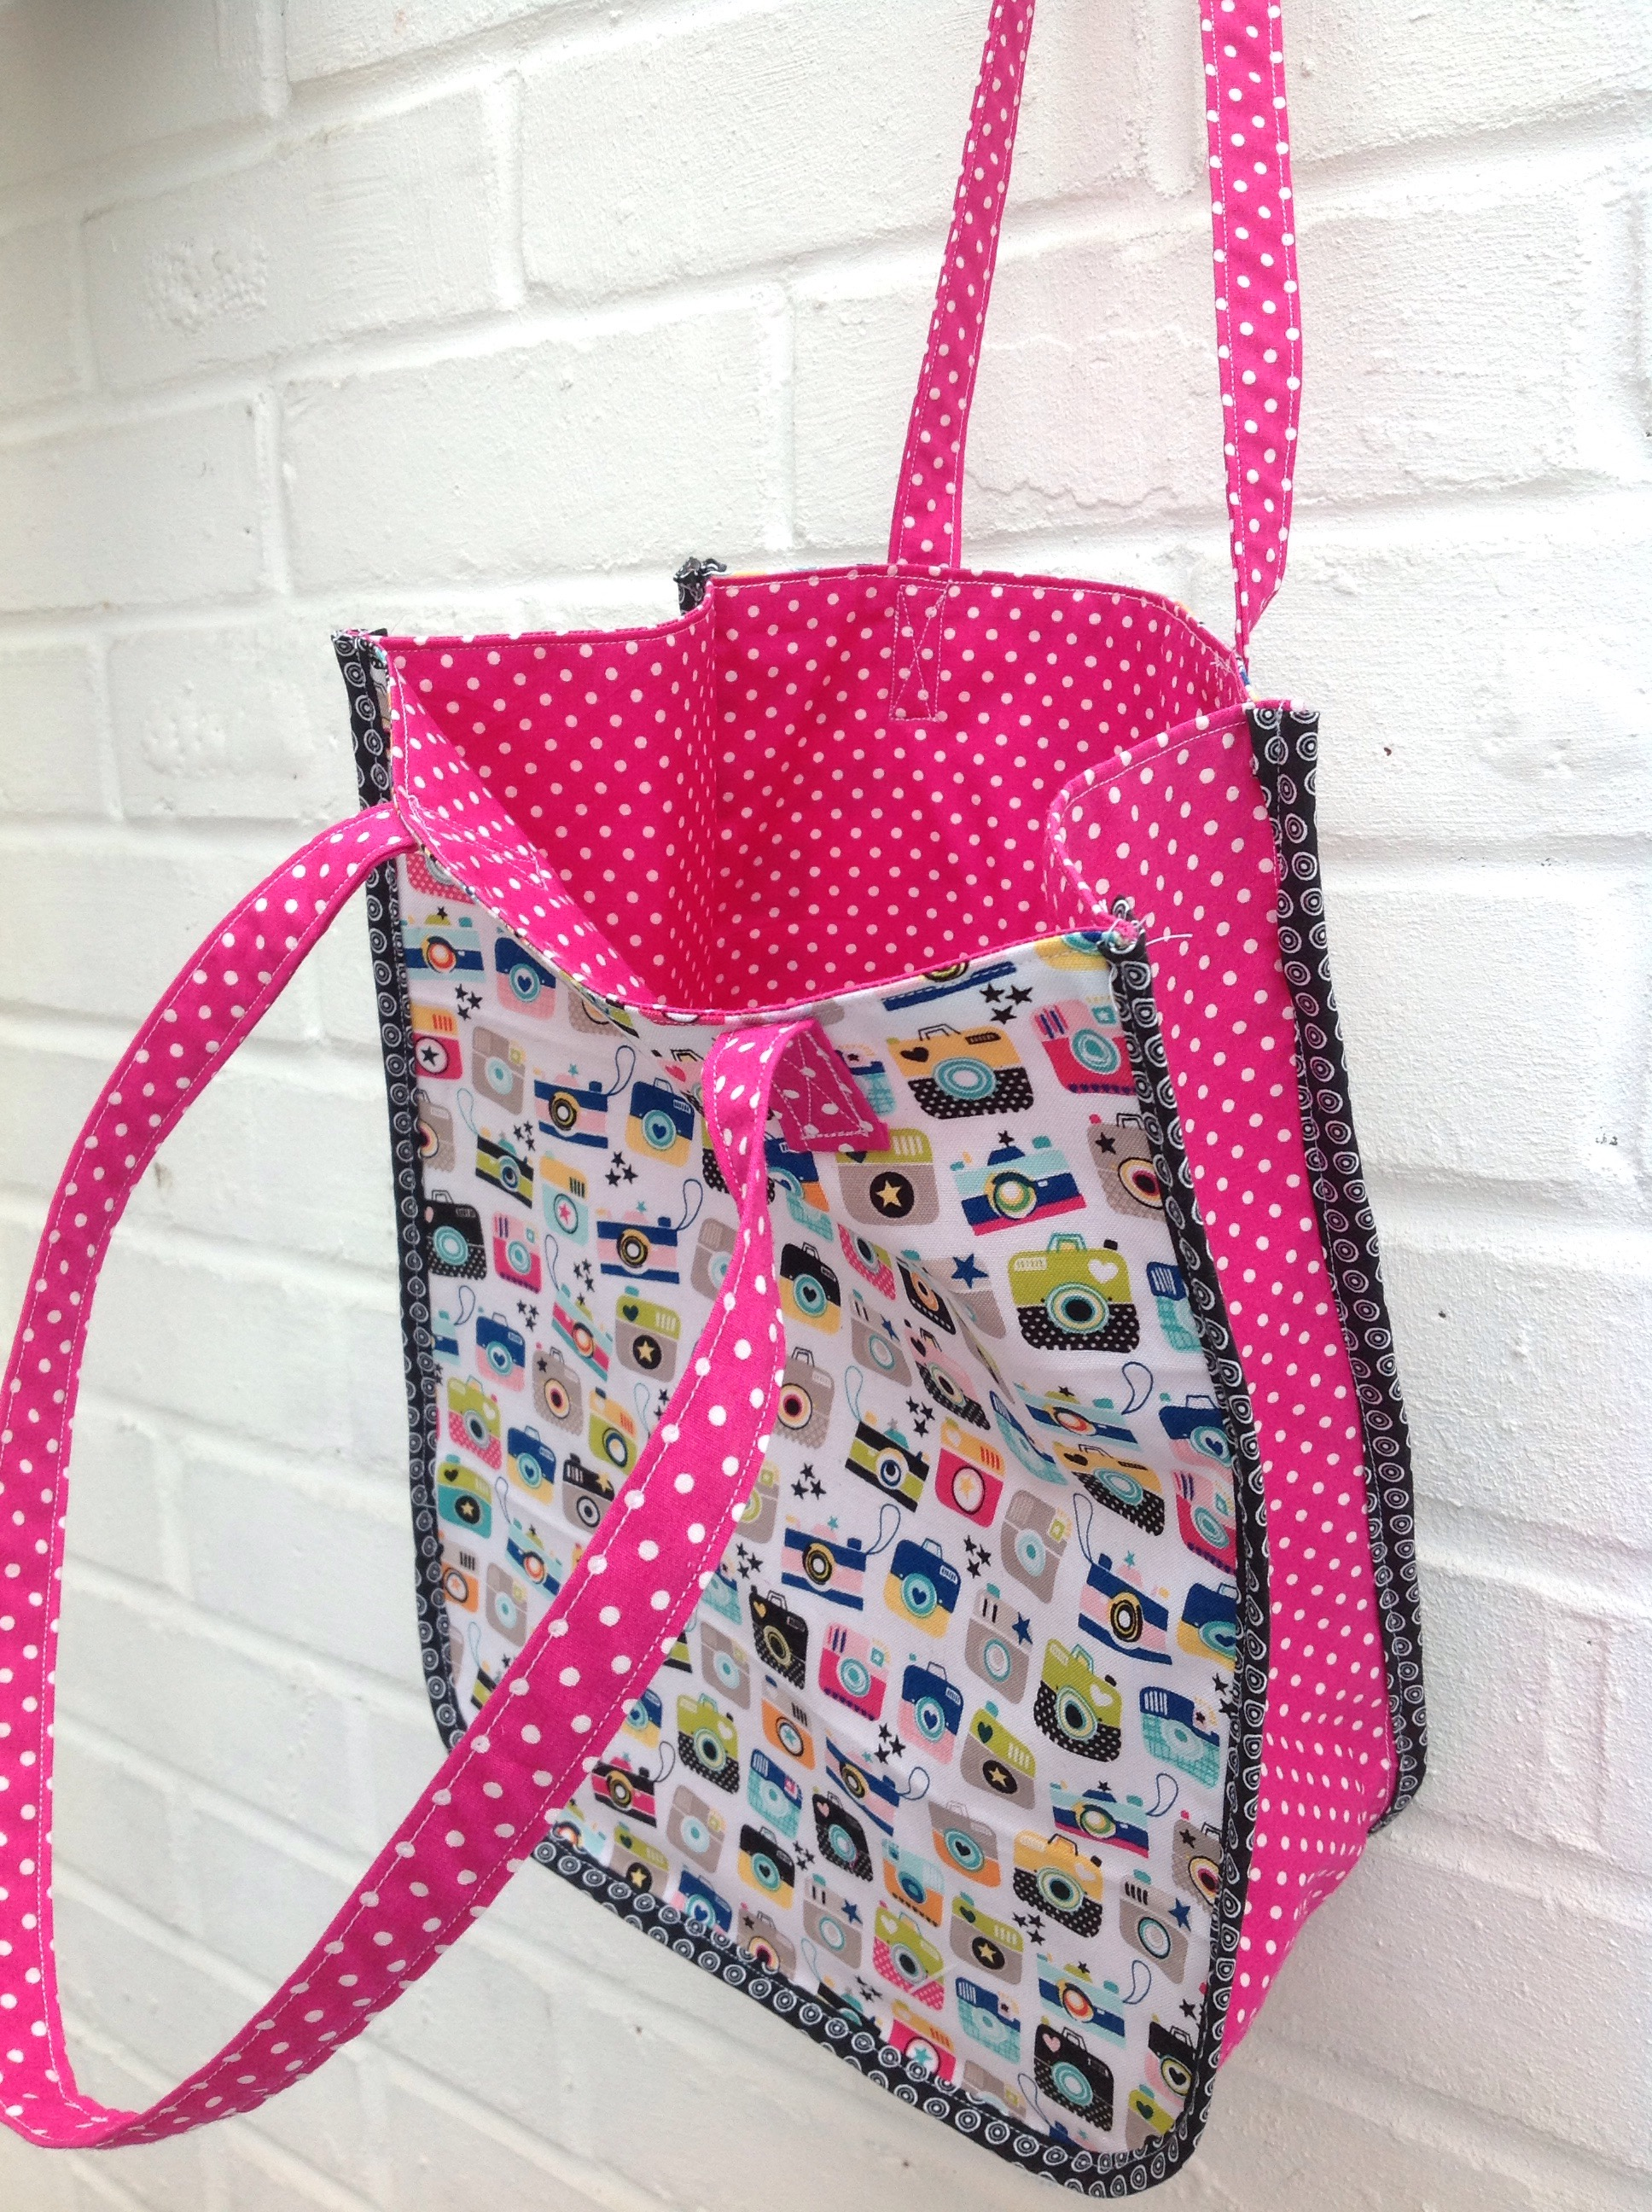 MY MONDAY MAKES Sew an 'Instamatic' Tote Bag free